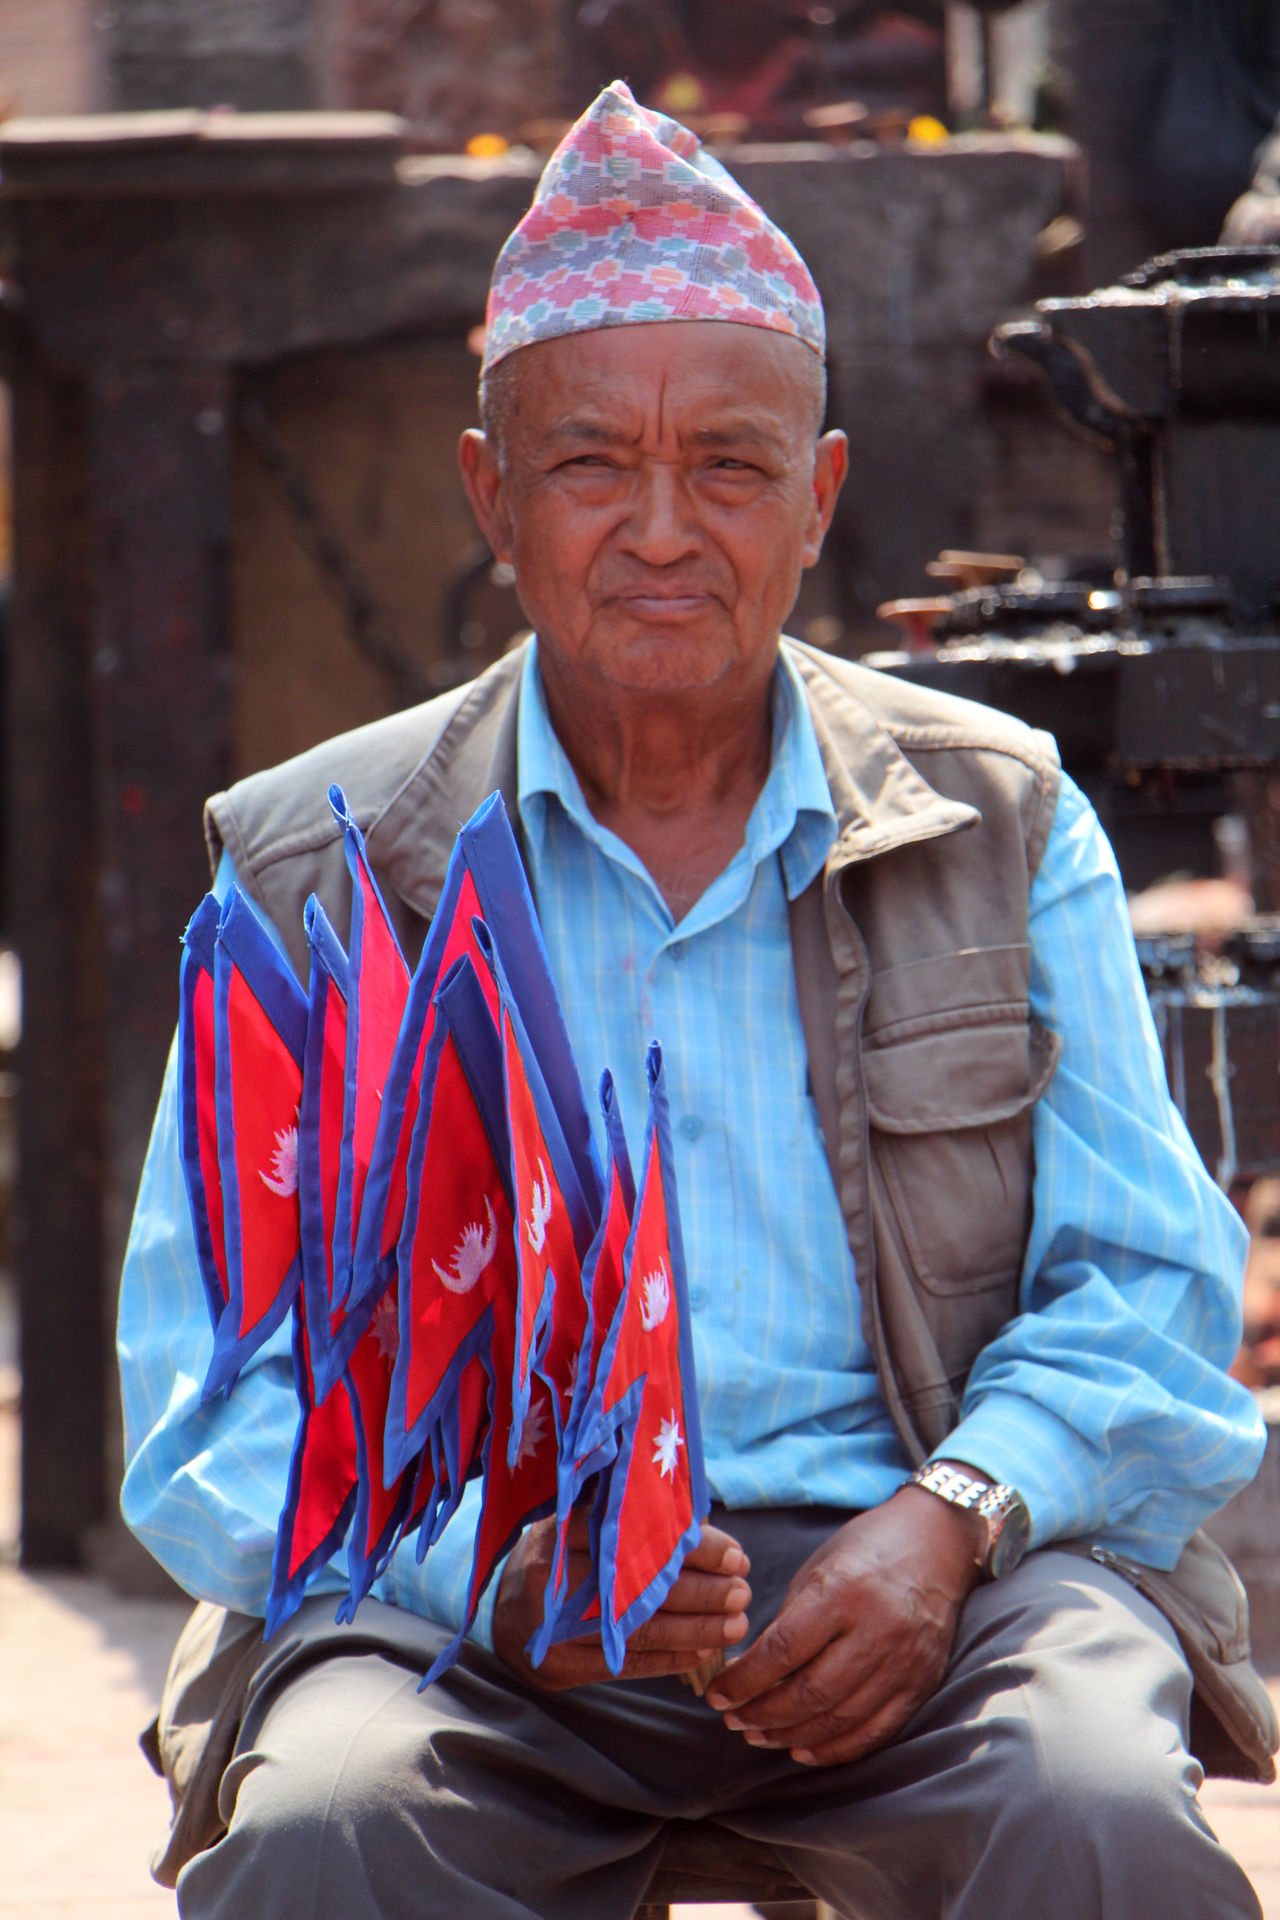 Casual Clothing Flag Flag Of Nepal Flags Focus On Foreground Lifestyles Looking At Camera Nepal Patriotism Person Portrait